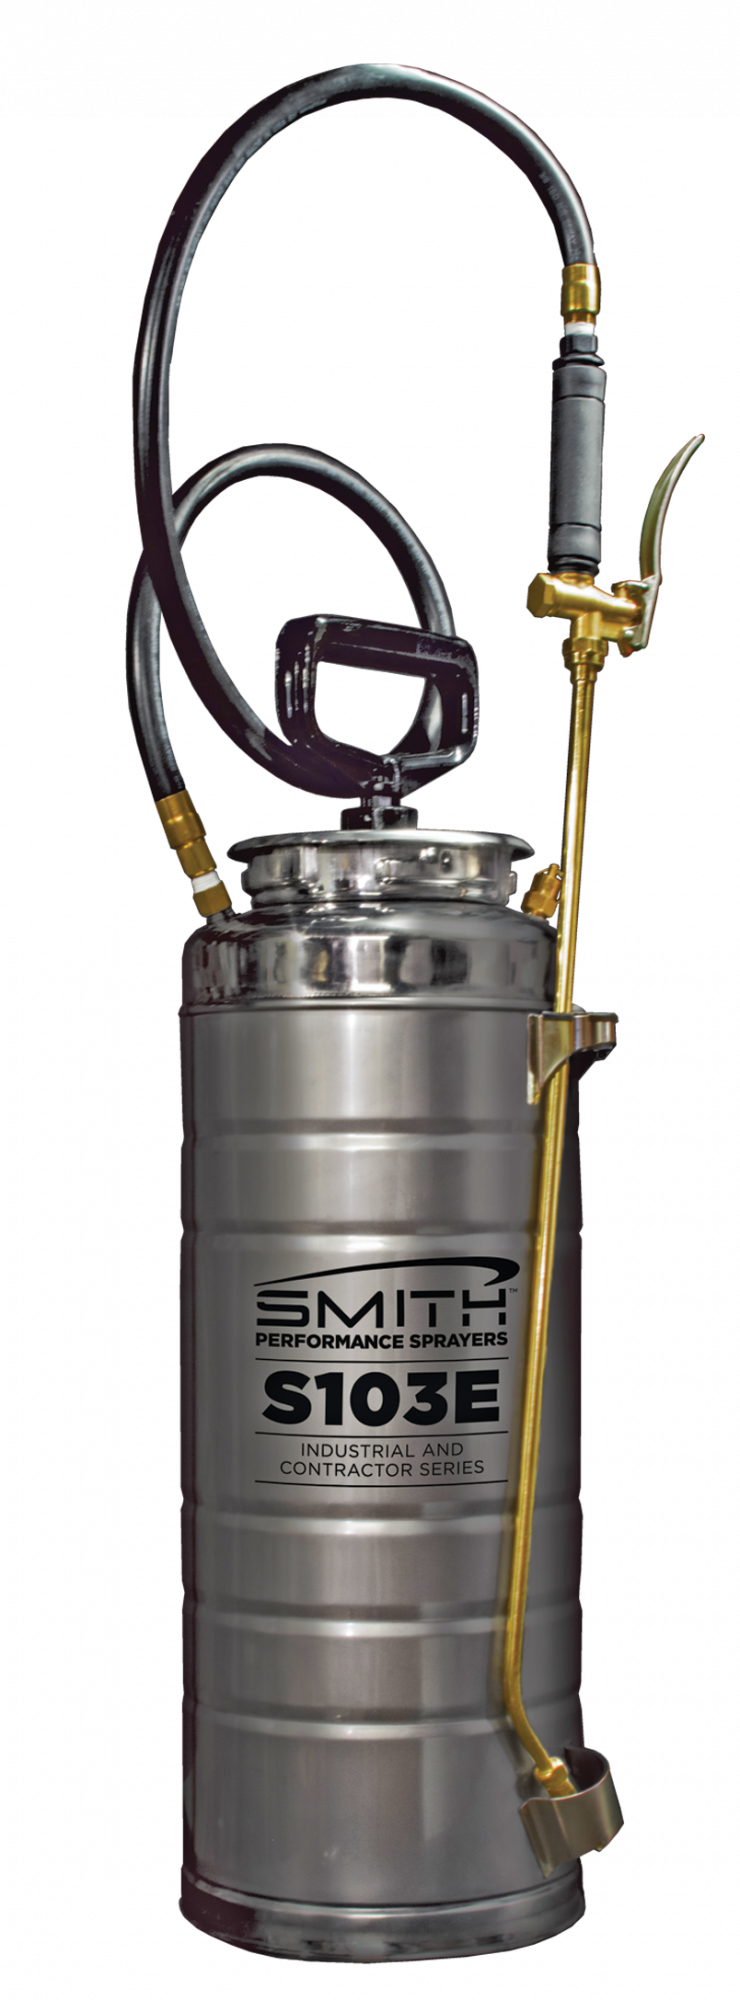 Smith Performance™ S103E 3.5-Gallon Stainless Steel Concrete Sprayer